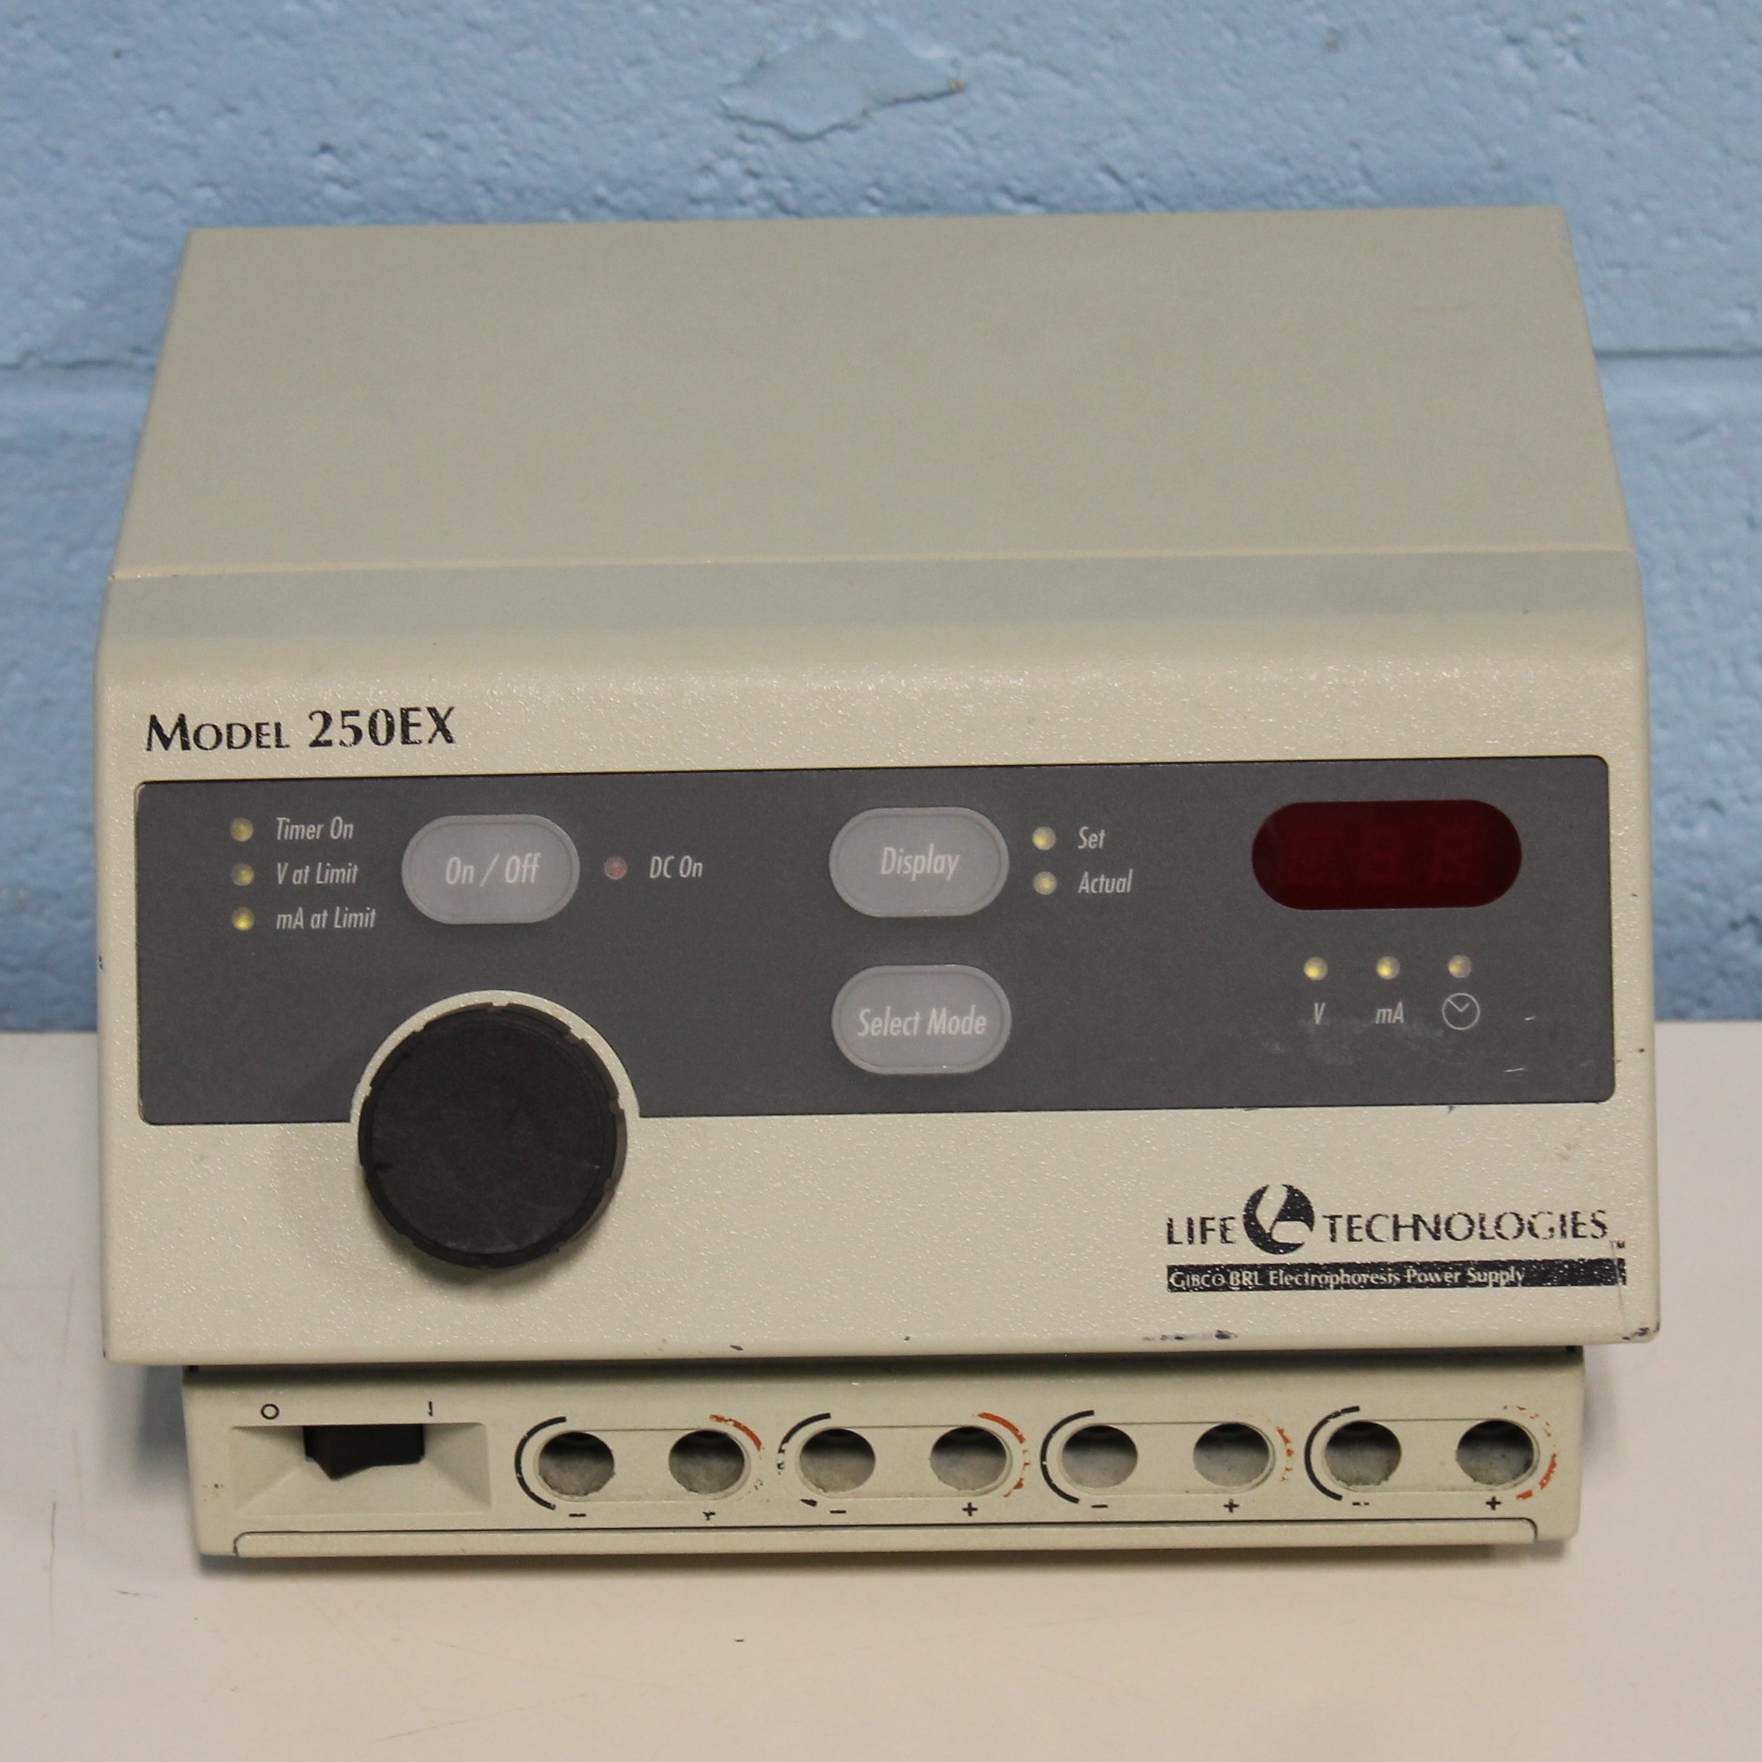 Life Technologies Inc. Electrophoresis Power Supply Model 250EX Image